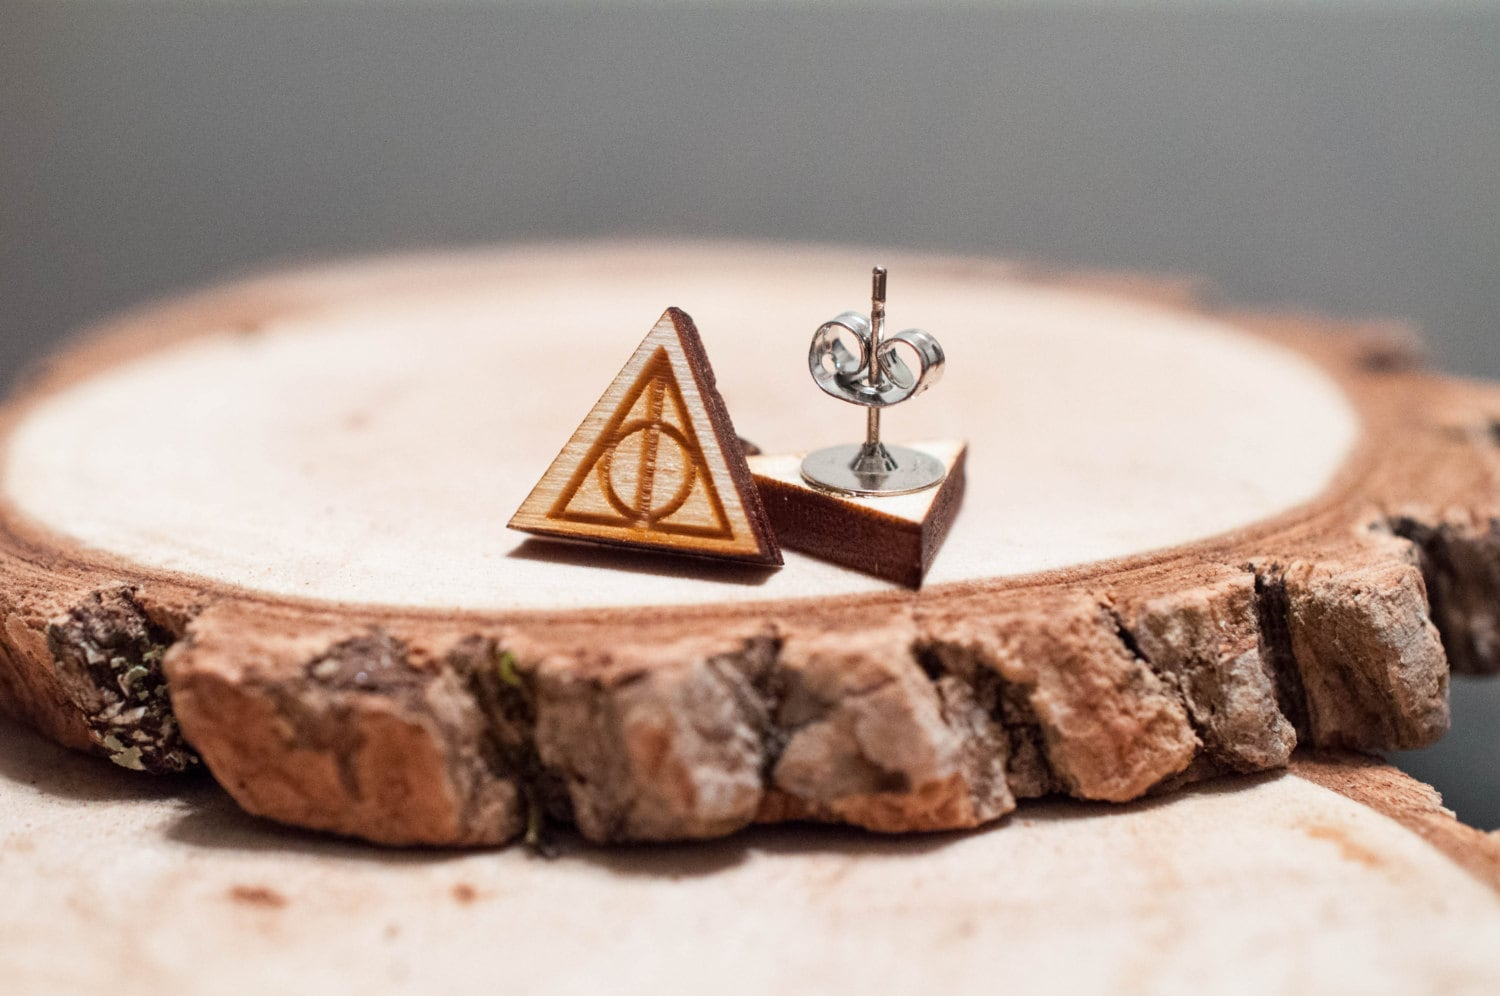 Laser-Cut Harry Potter Deathly Hallow's Earrings from SimplistiCreations